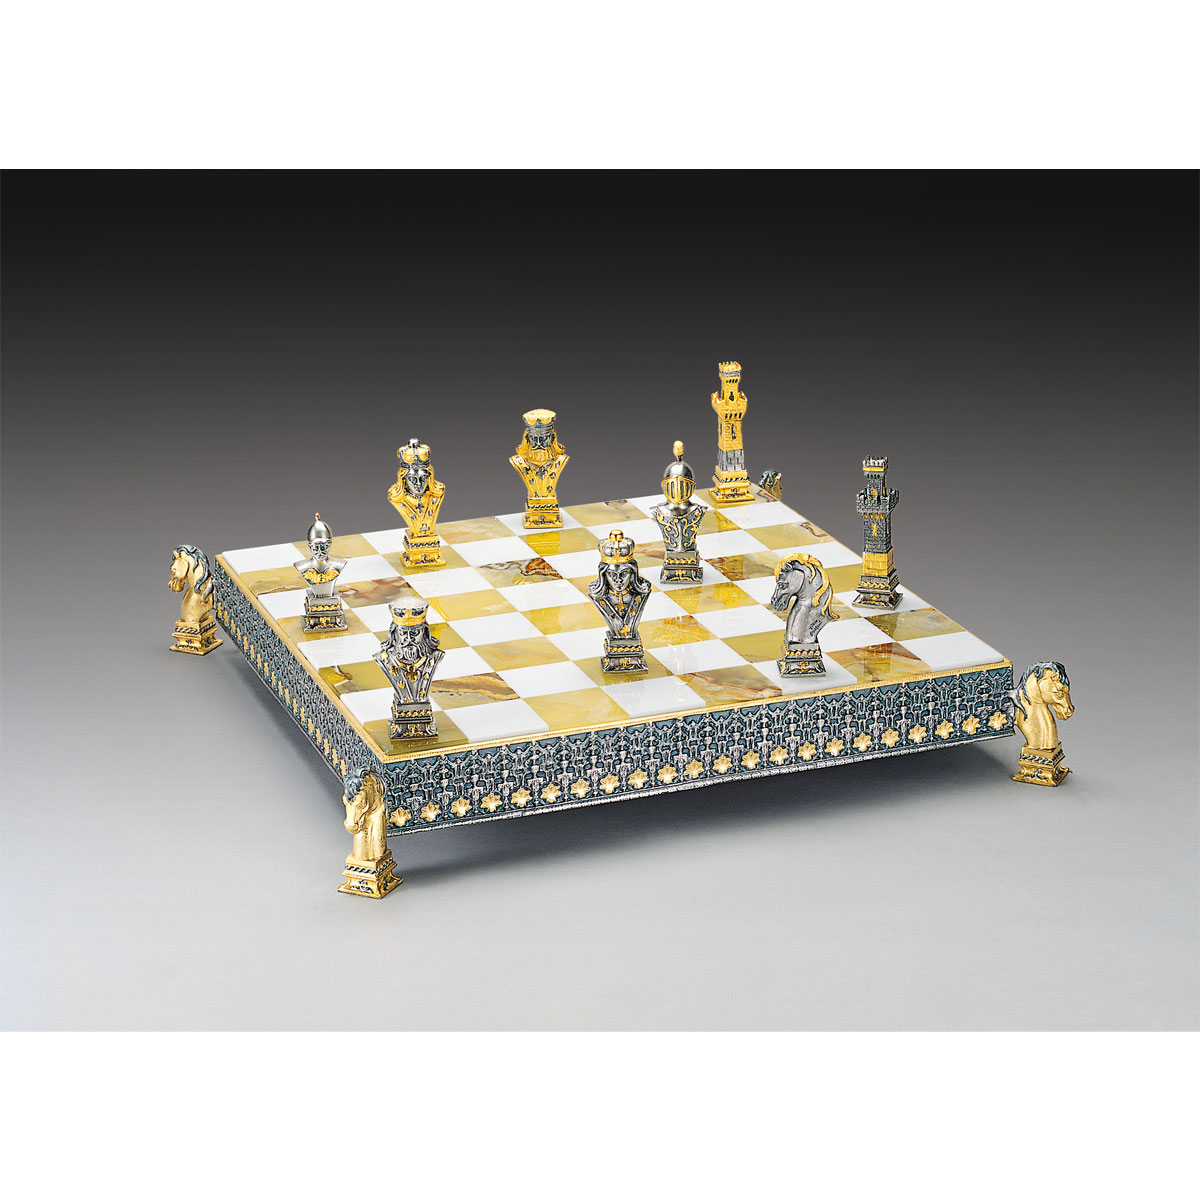 Poker Gold and Silver Themed Chess Set